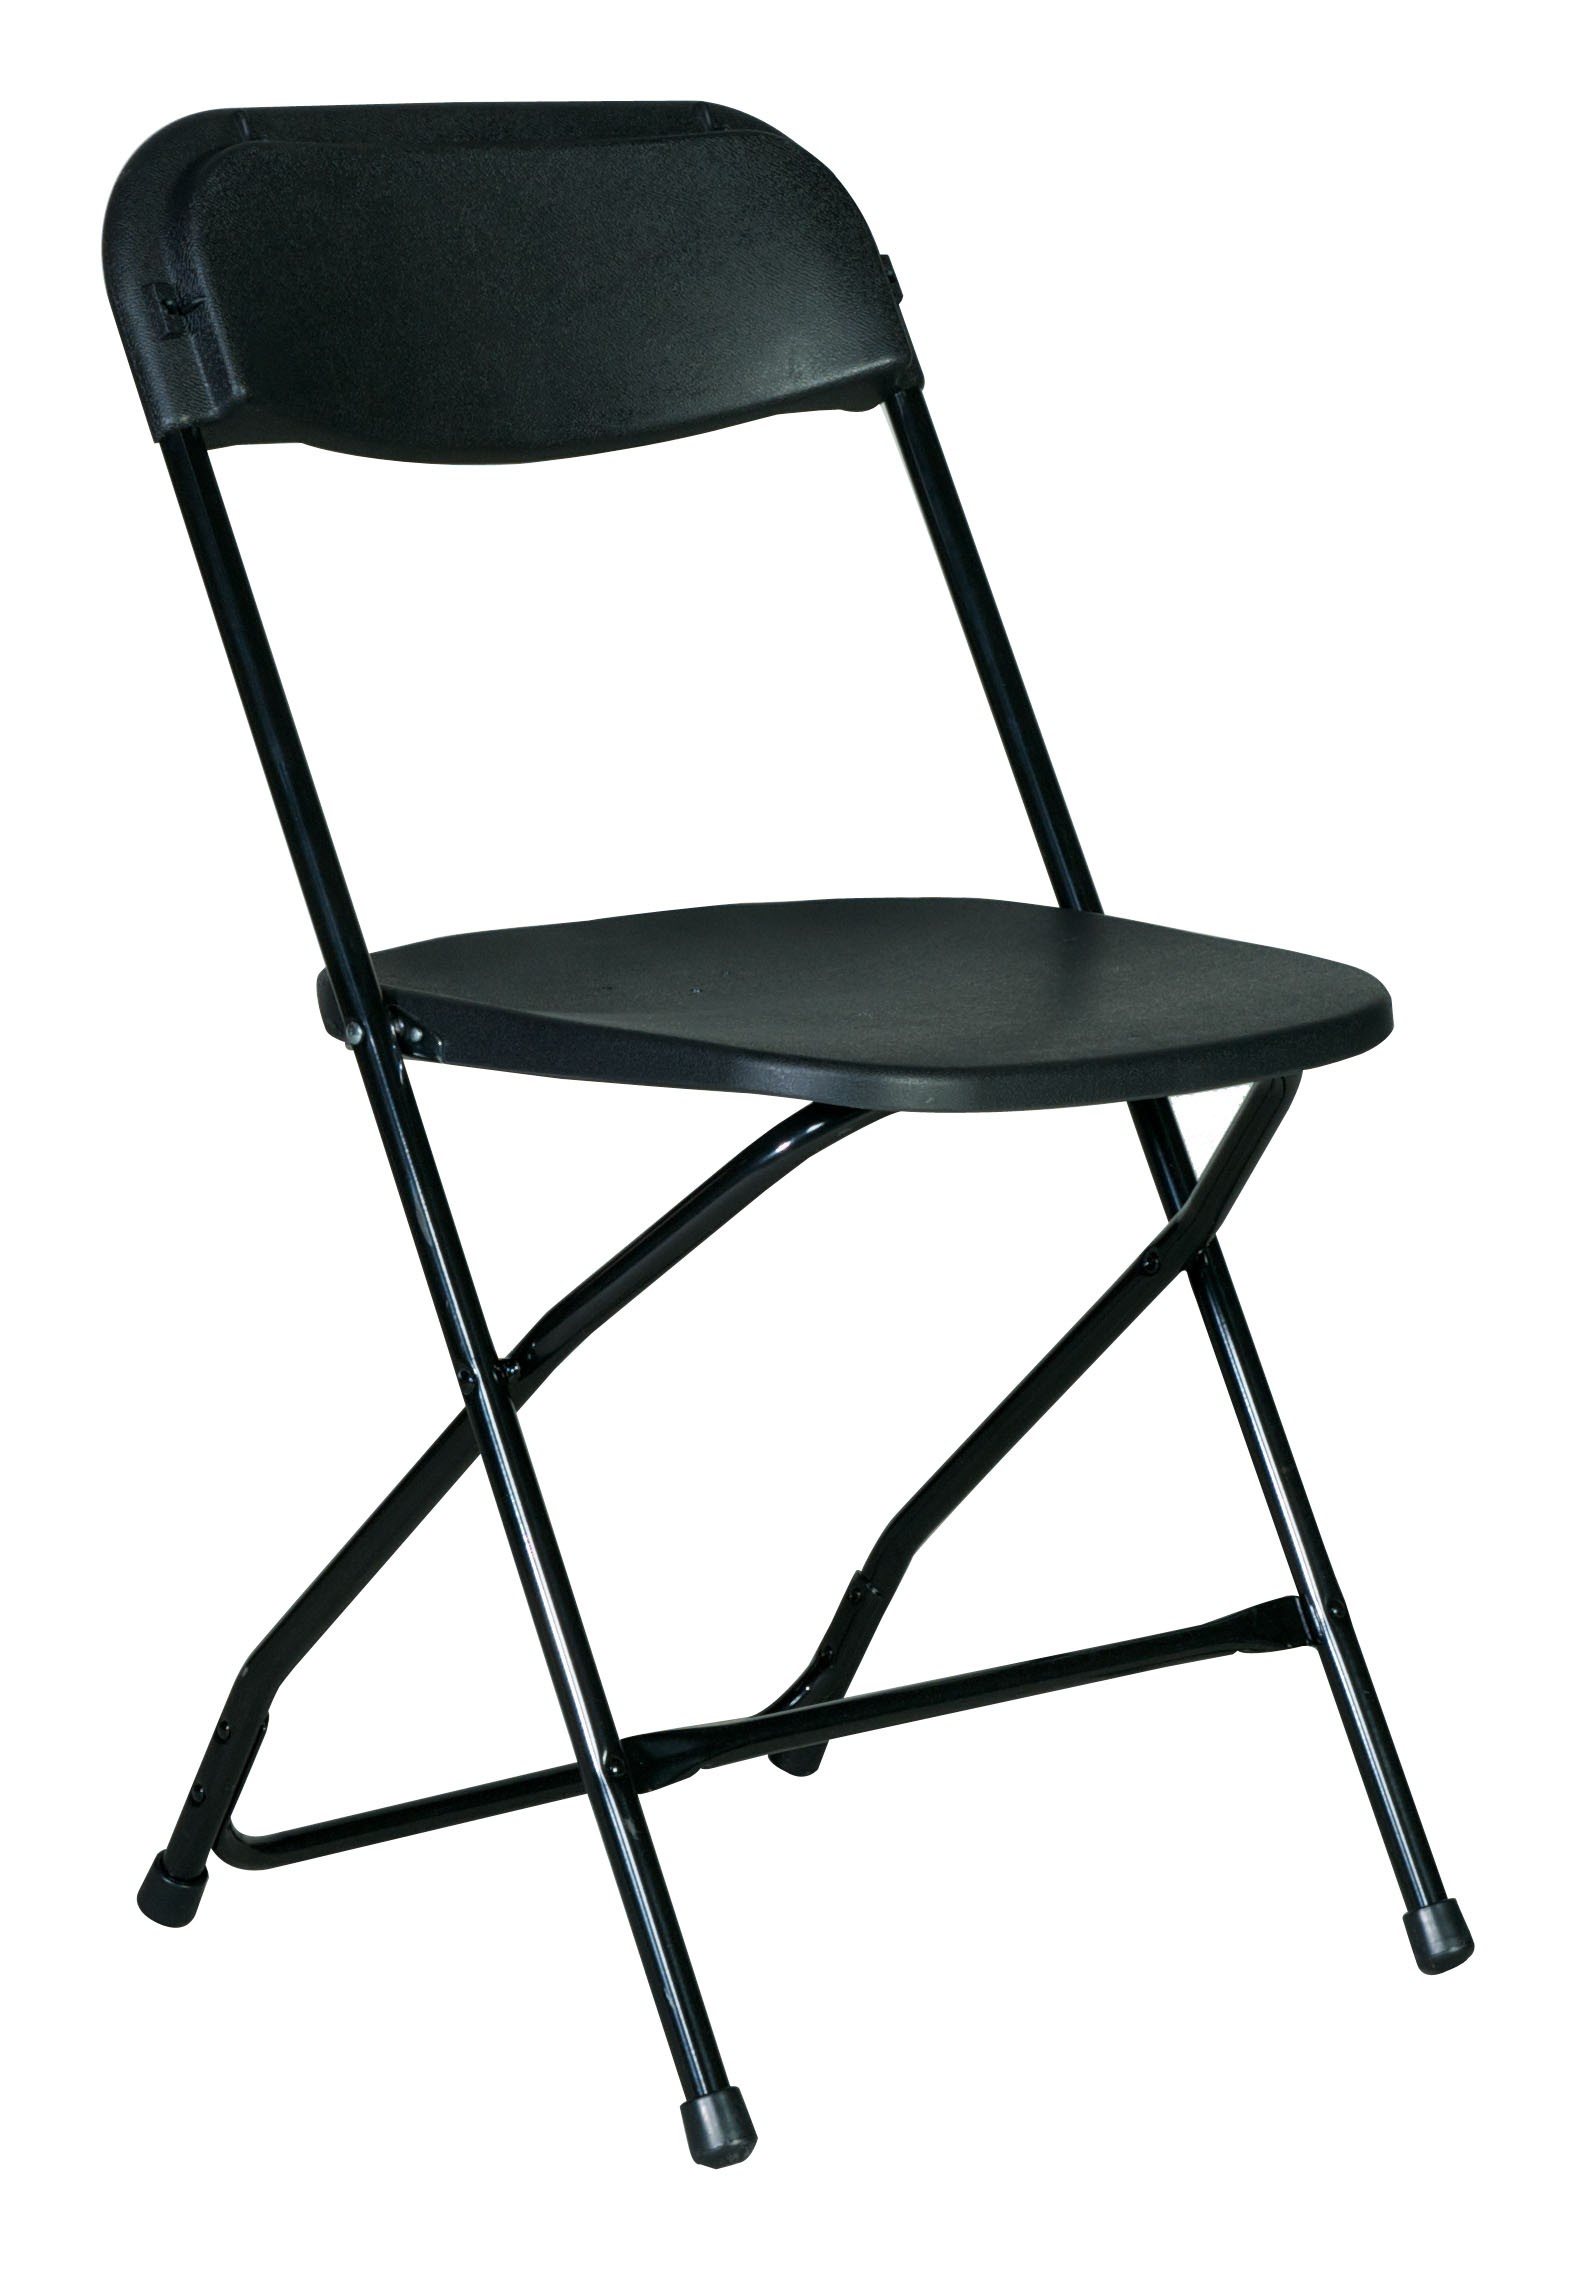 Attrayant Black Folding Chair